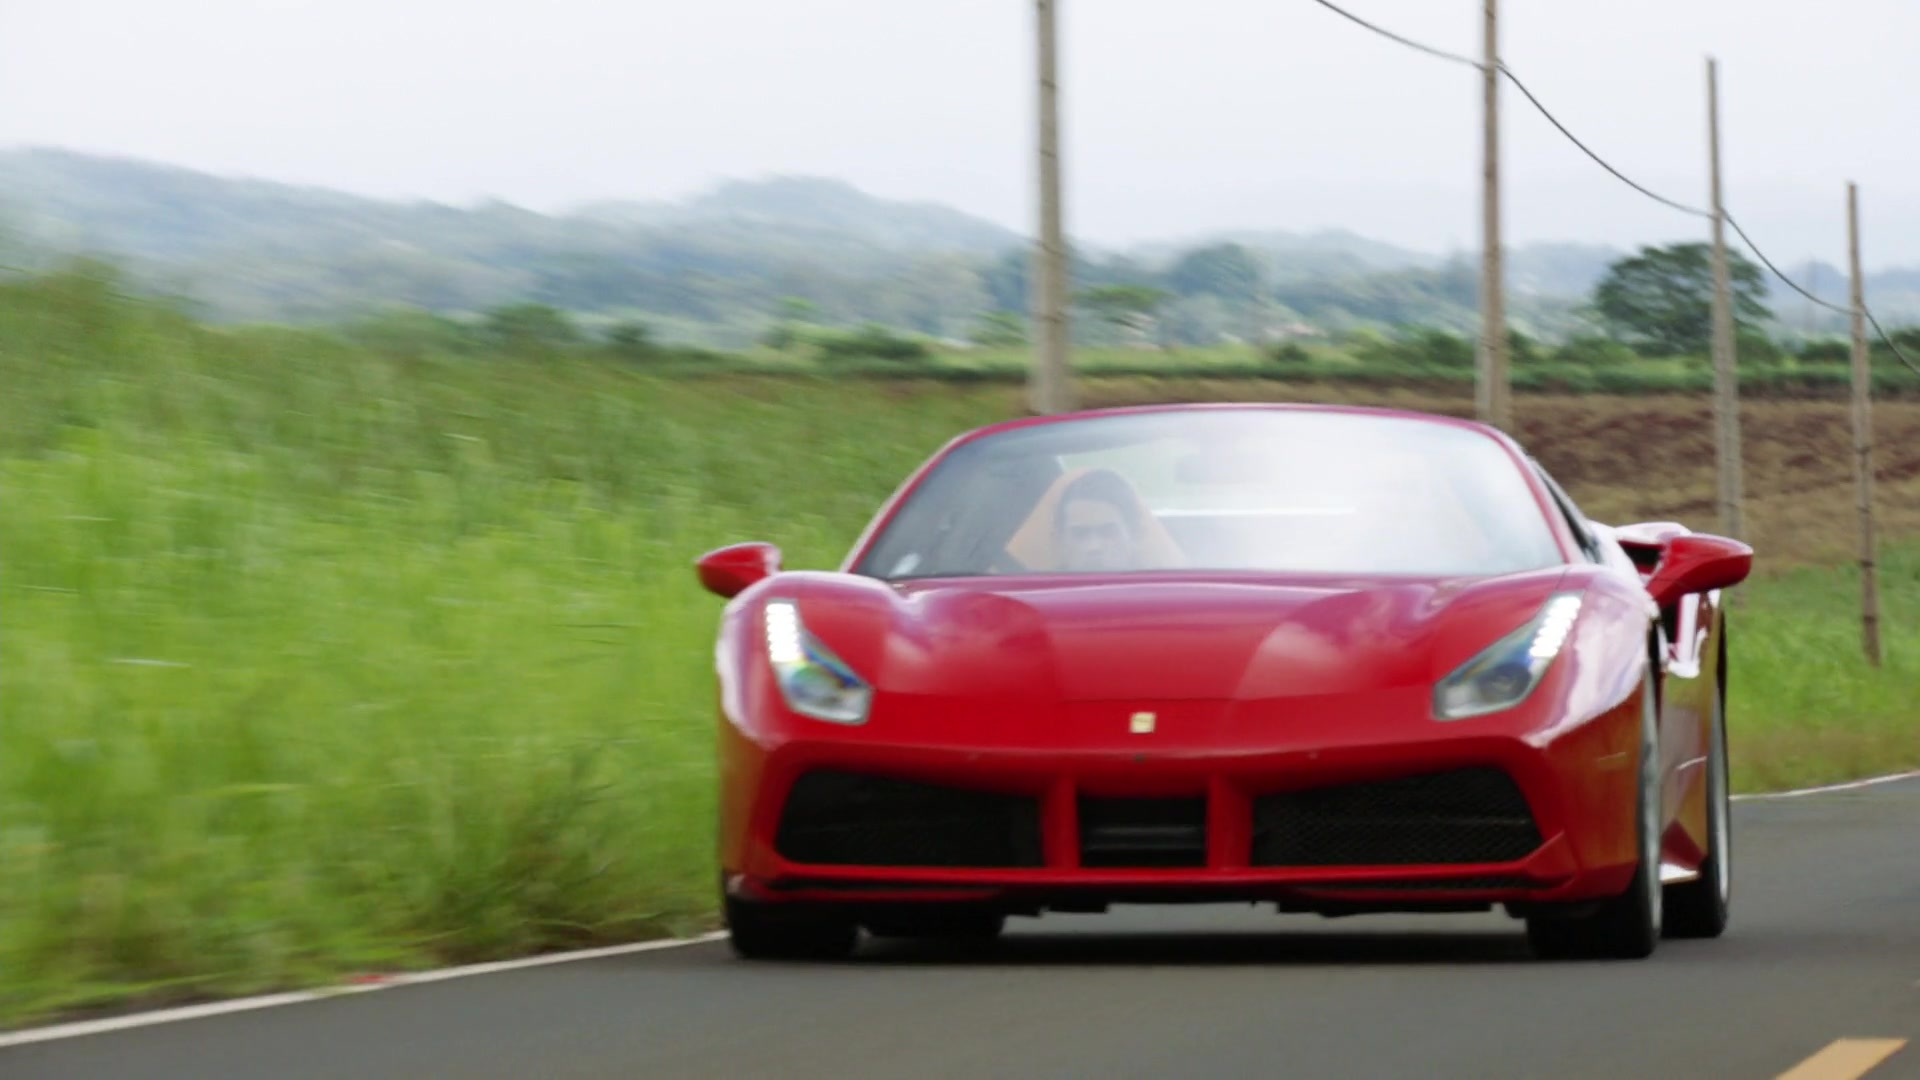 Used Cars Hawaii >> Ferrari 488 Spider Red Sports Car Used by Jay Hernandez in ...